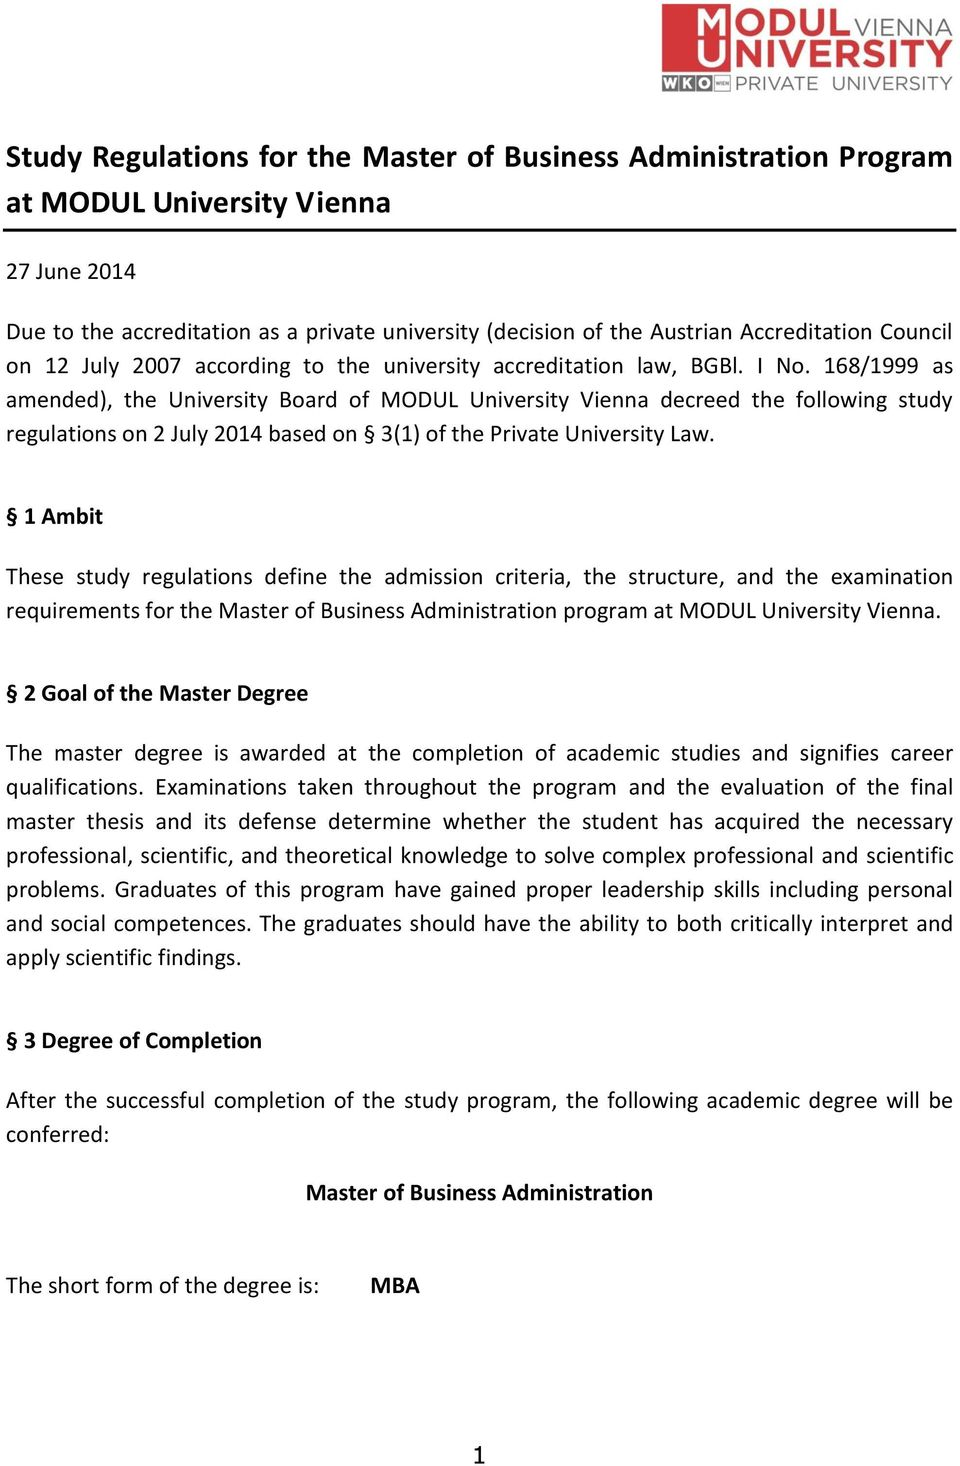 168/1999 as amended), the University Board of MODUL University Vienna decreed the following study regulations on 2 July 2014 based on 3(1) of the Private University Law.